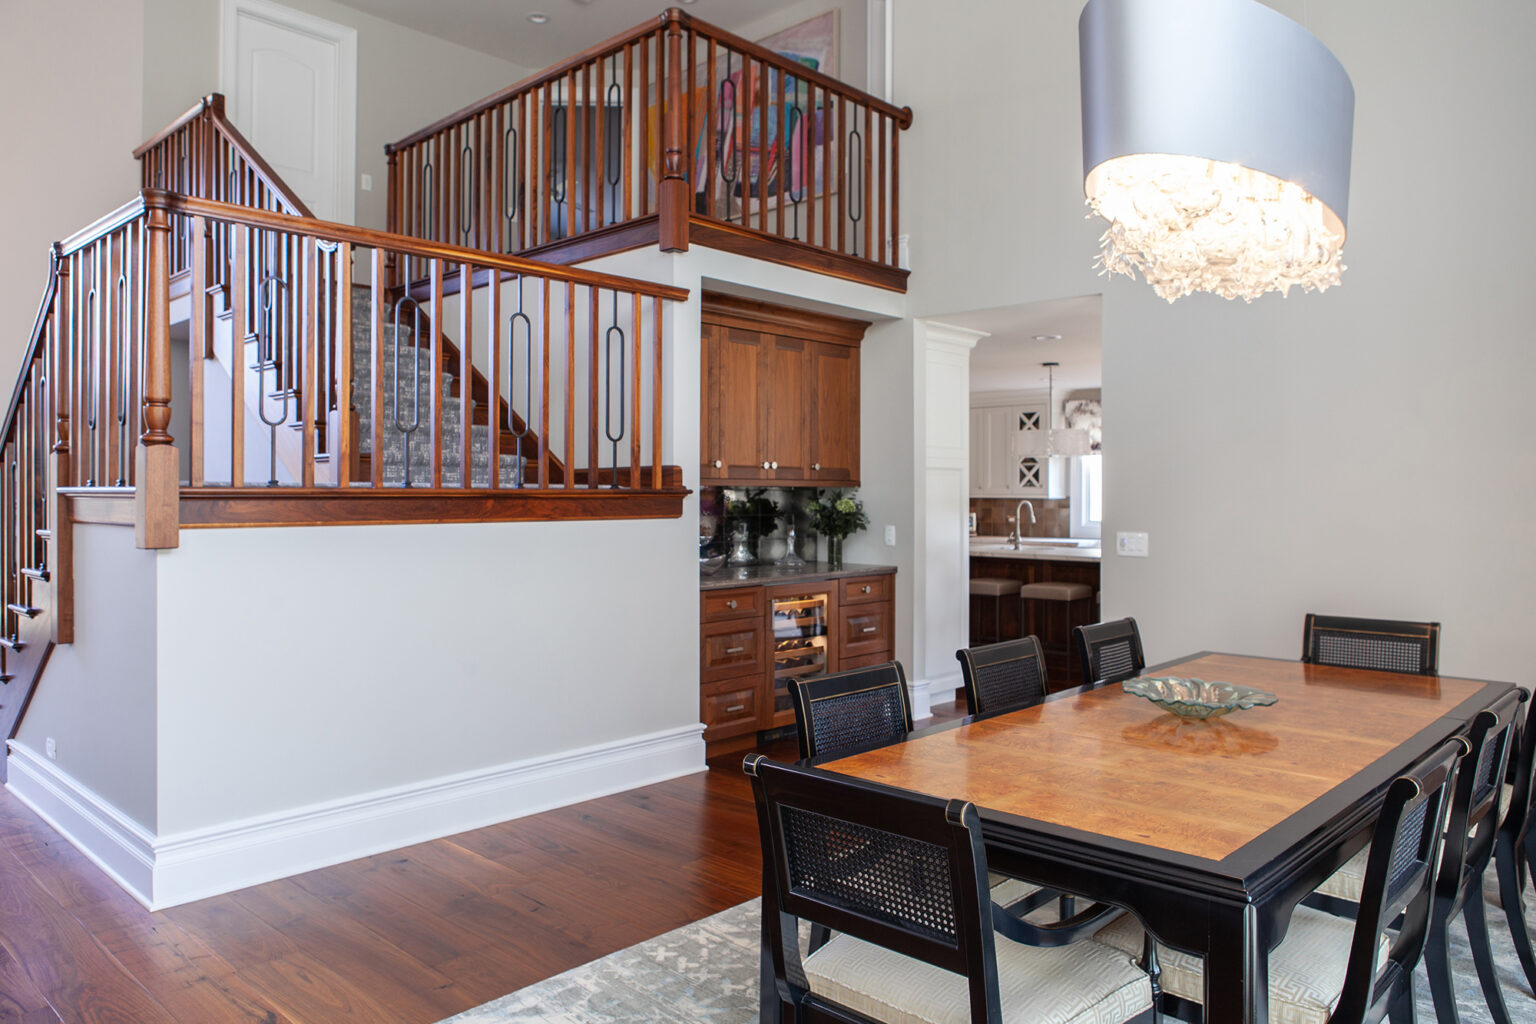 dining room with open staircase in background